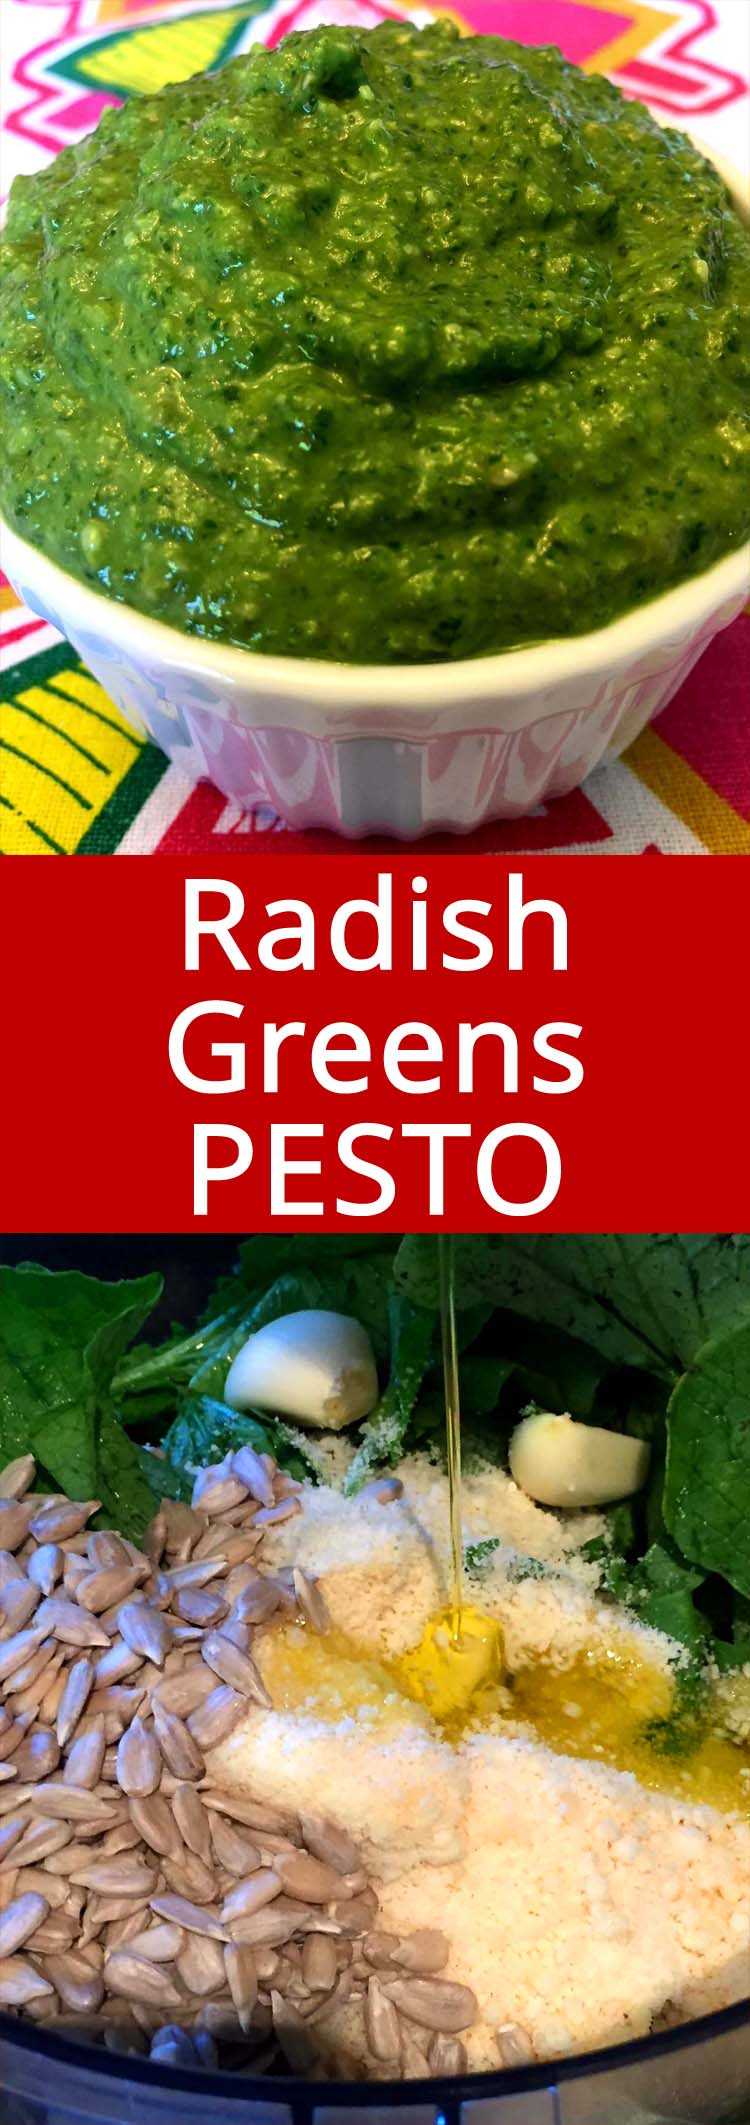 What a great way to use up those radish leaves! This radish greens pesto is amazing!